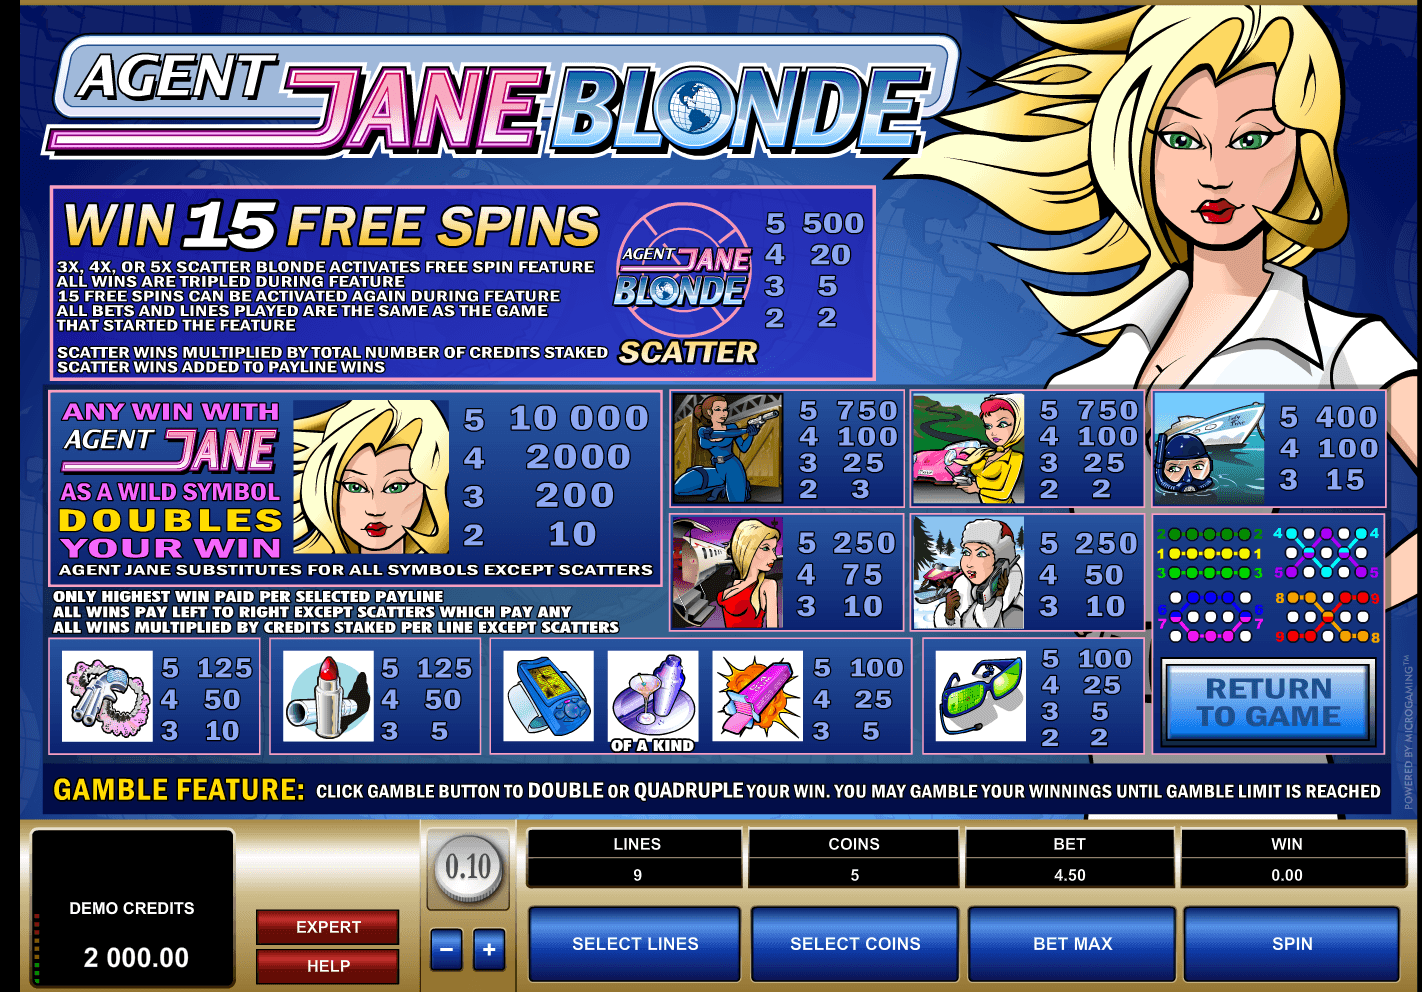 Agent Jane Blonde Slot symbols